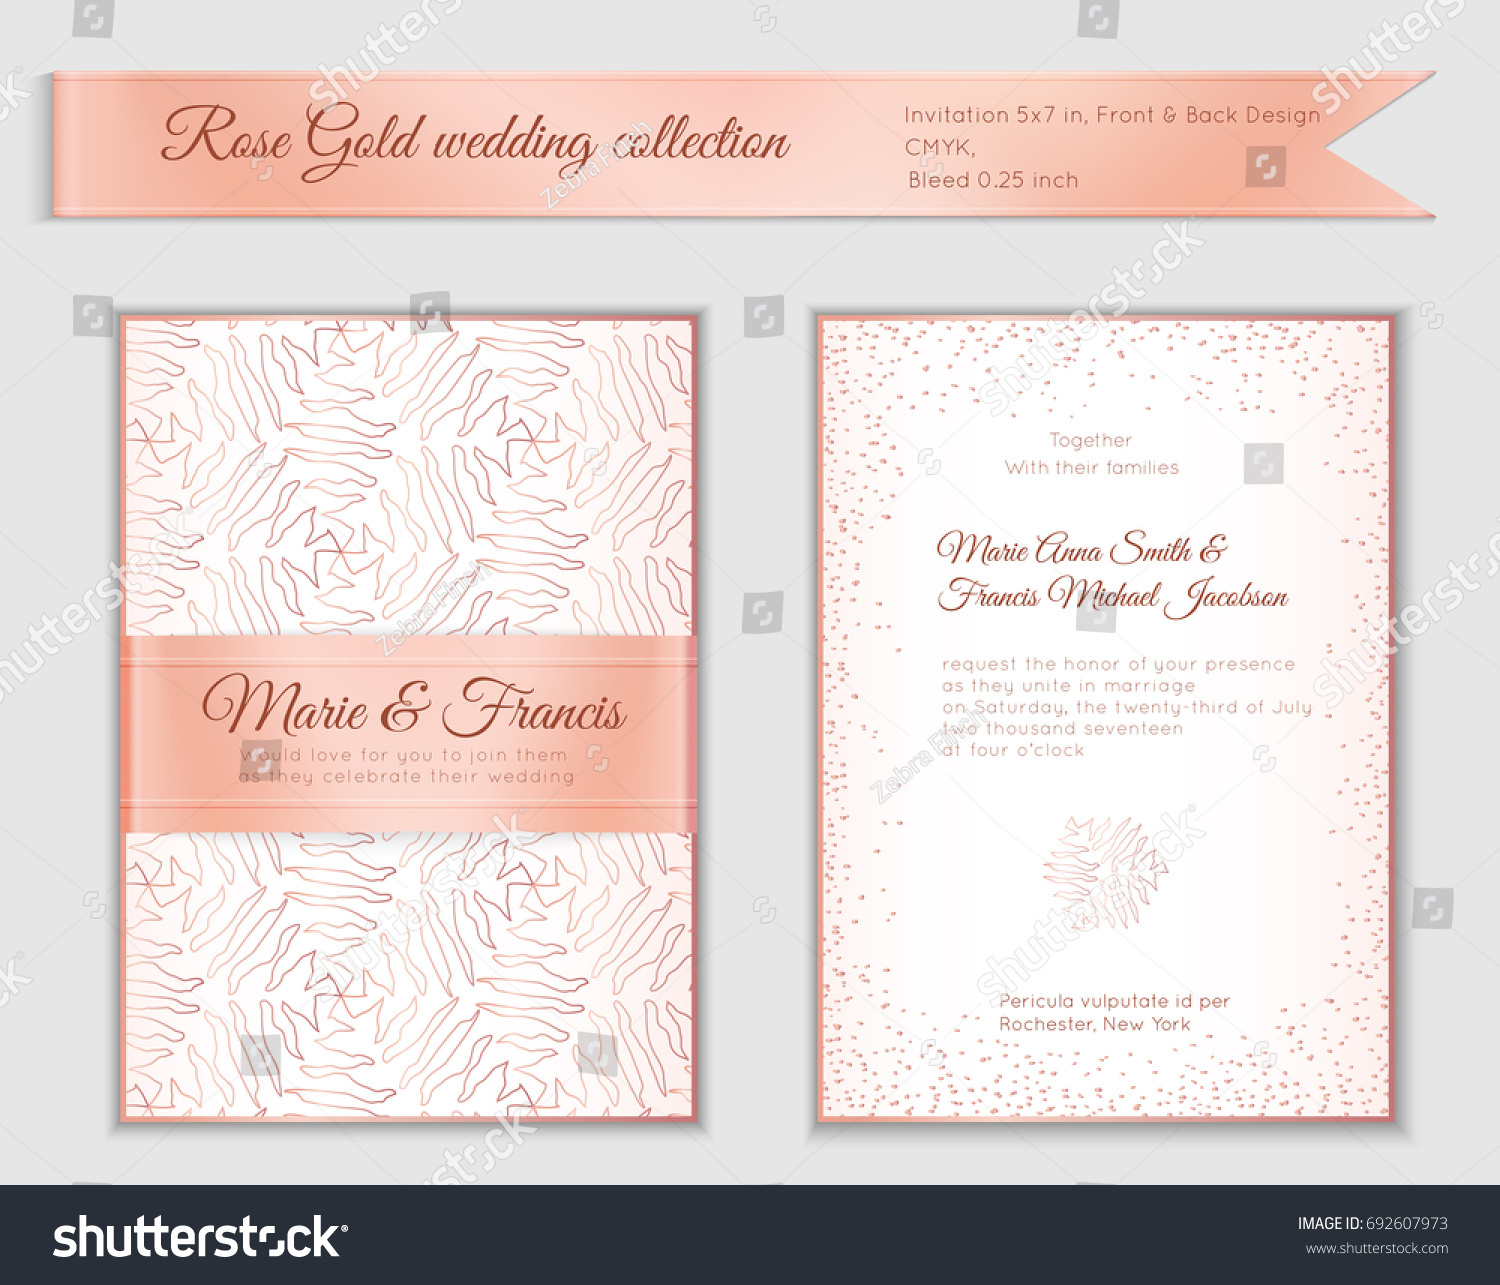 Luxury wedding invitation template rose gold stock vector luxury wedding invitation template with rose gold shiny realistic ribbon back and front card layout stopboris Images